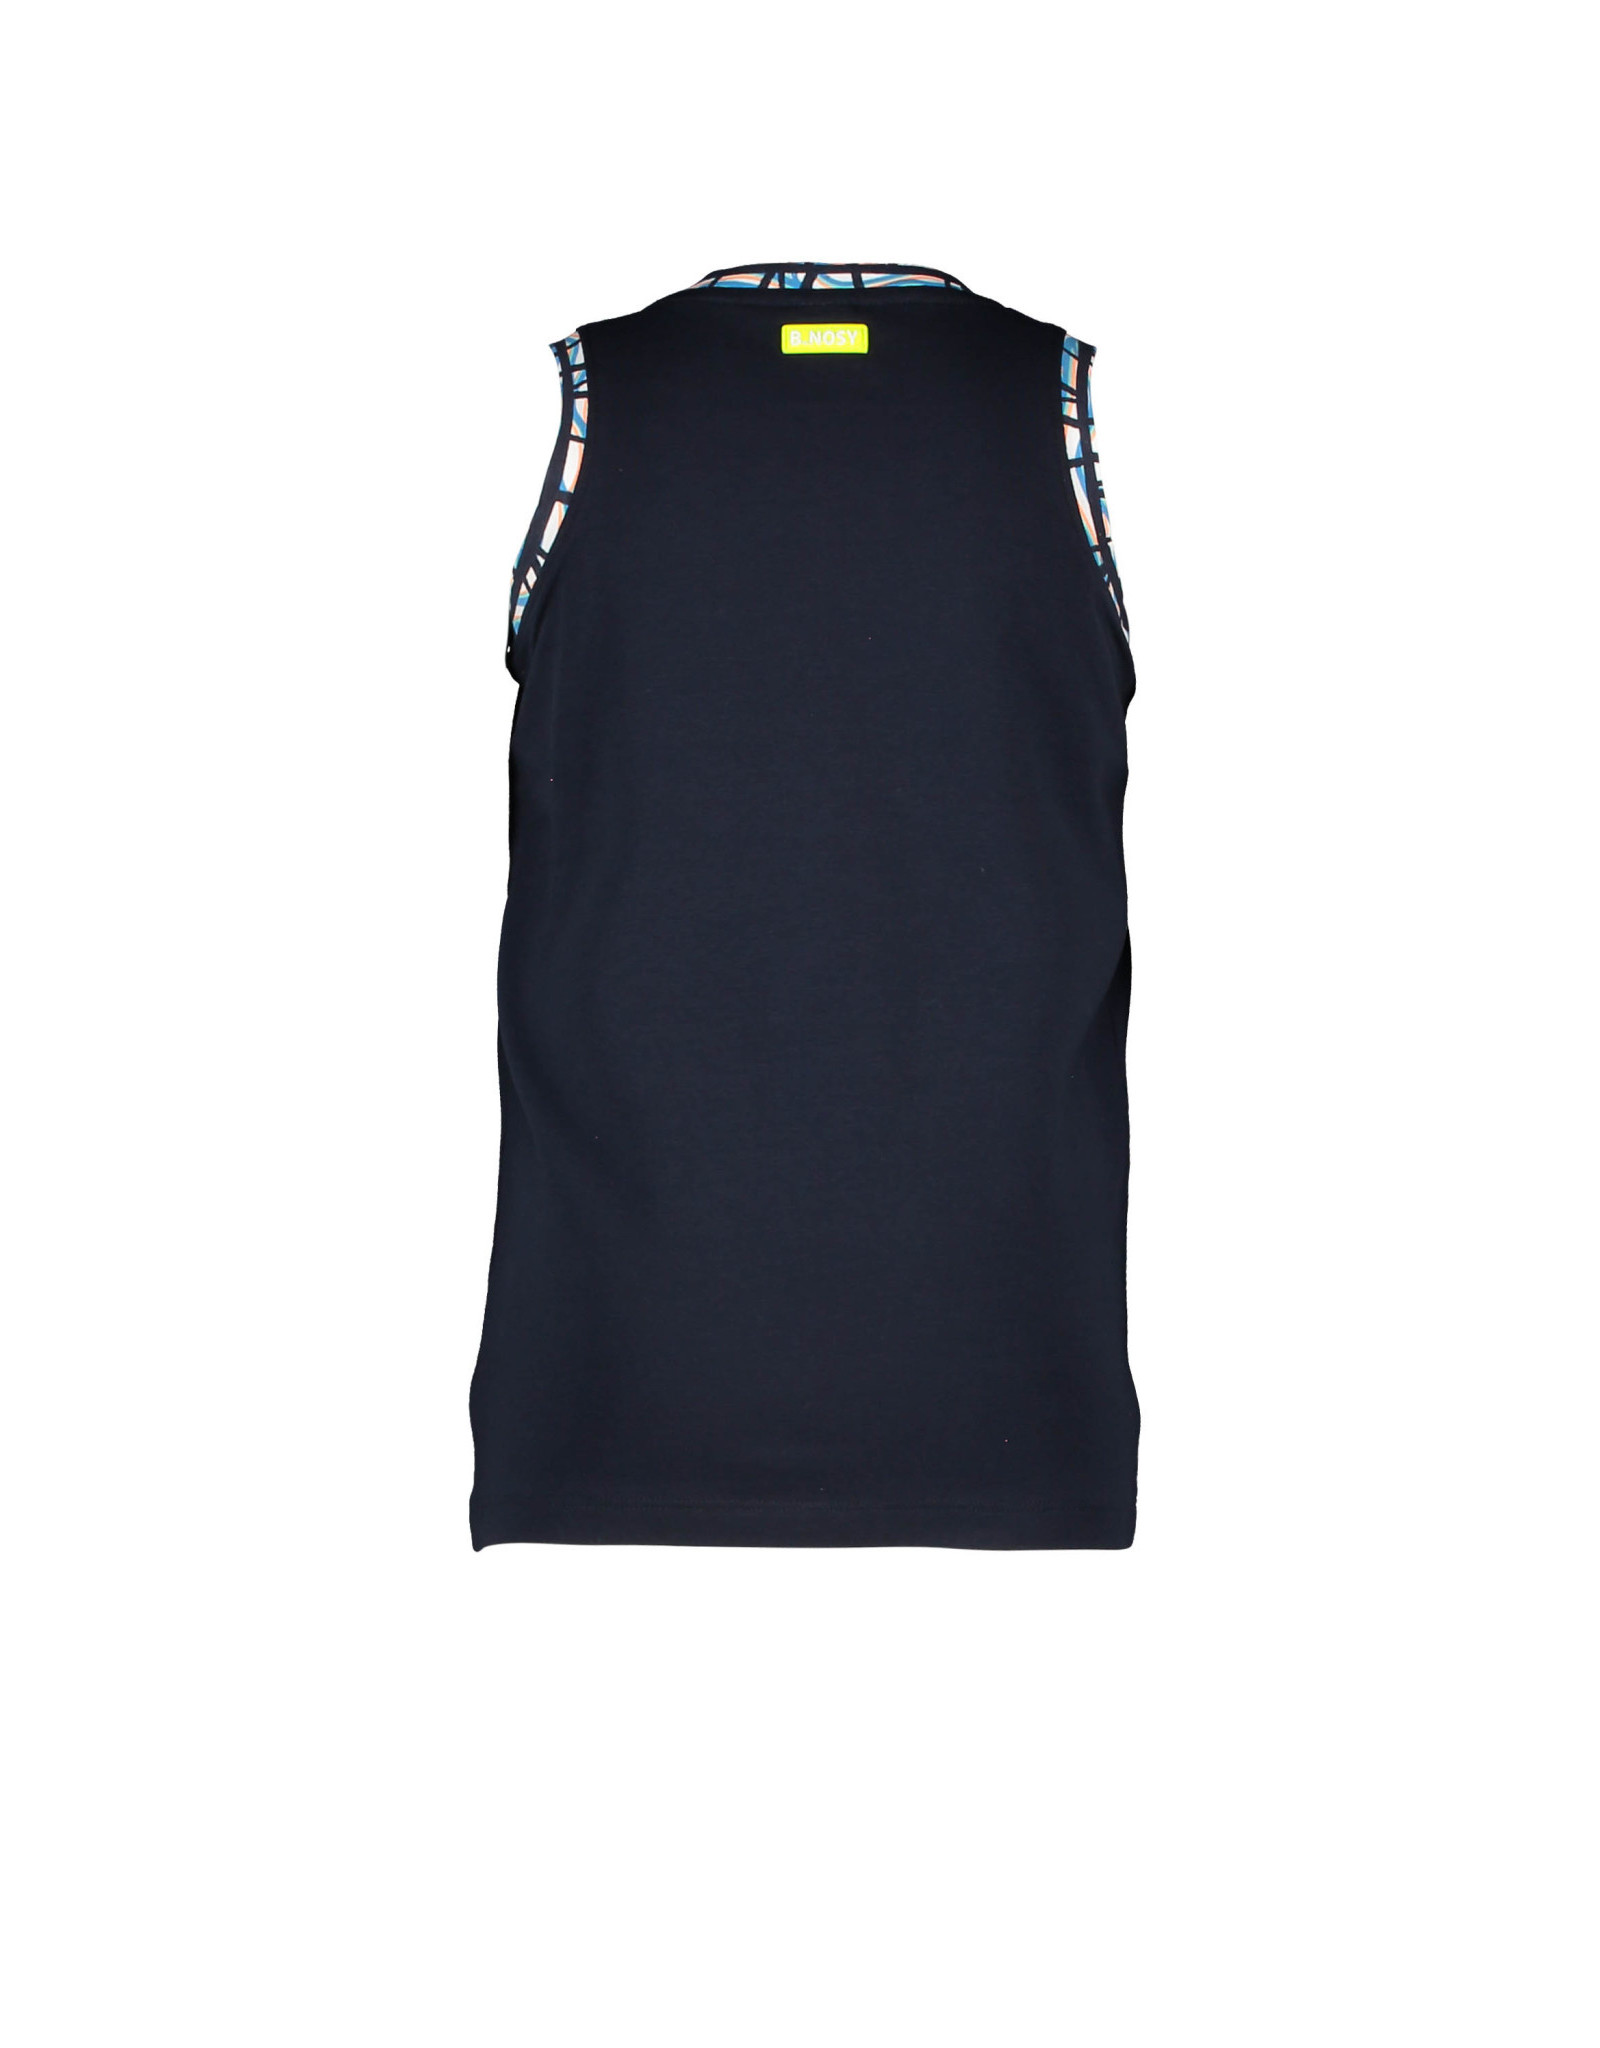 B-nosy Boys tank top with artwork on chest 129 Oxford blue